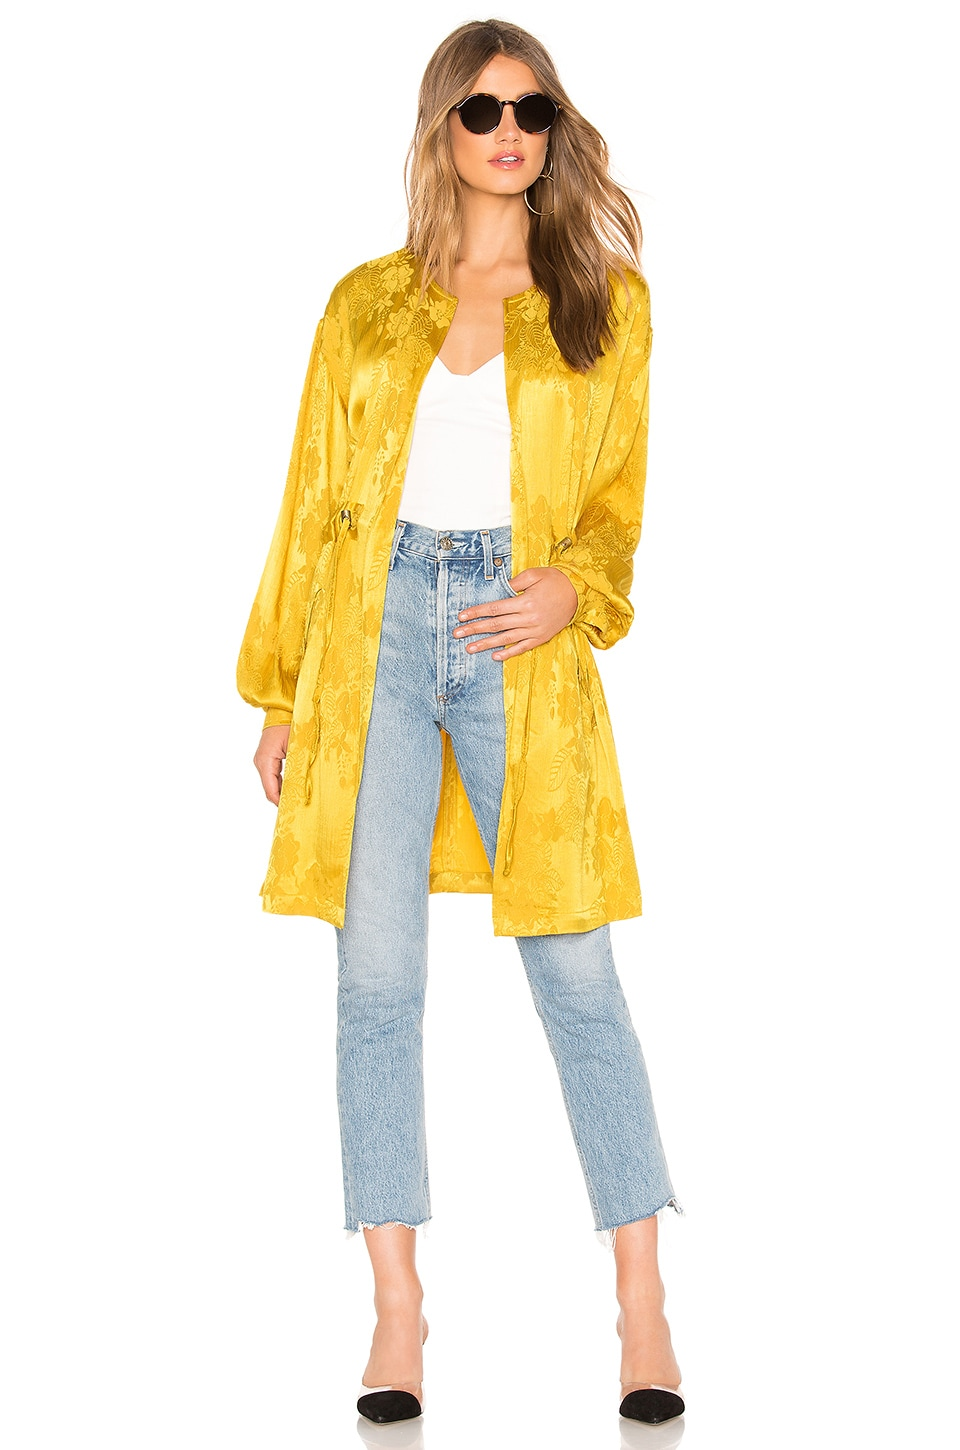 Tularosa Brooke Jacket in Golden Yellow